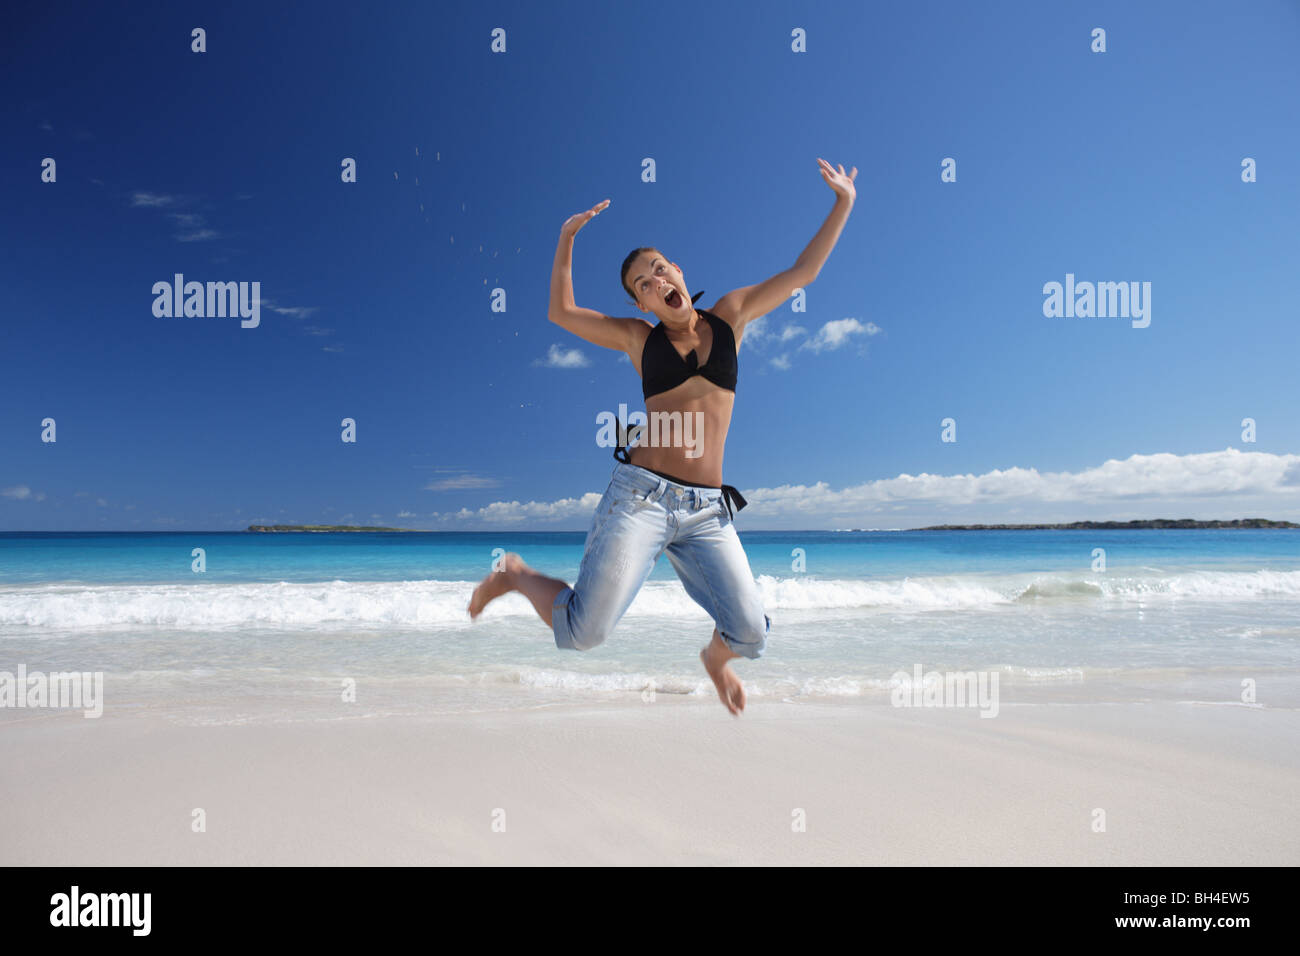 Young woman leaping in the air on a deserted tropical beach, smiling - Stock Image